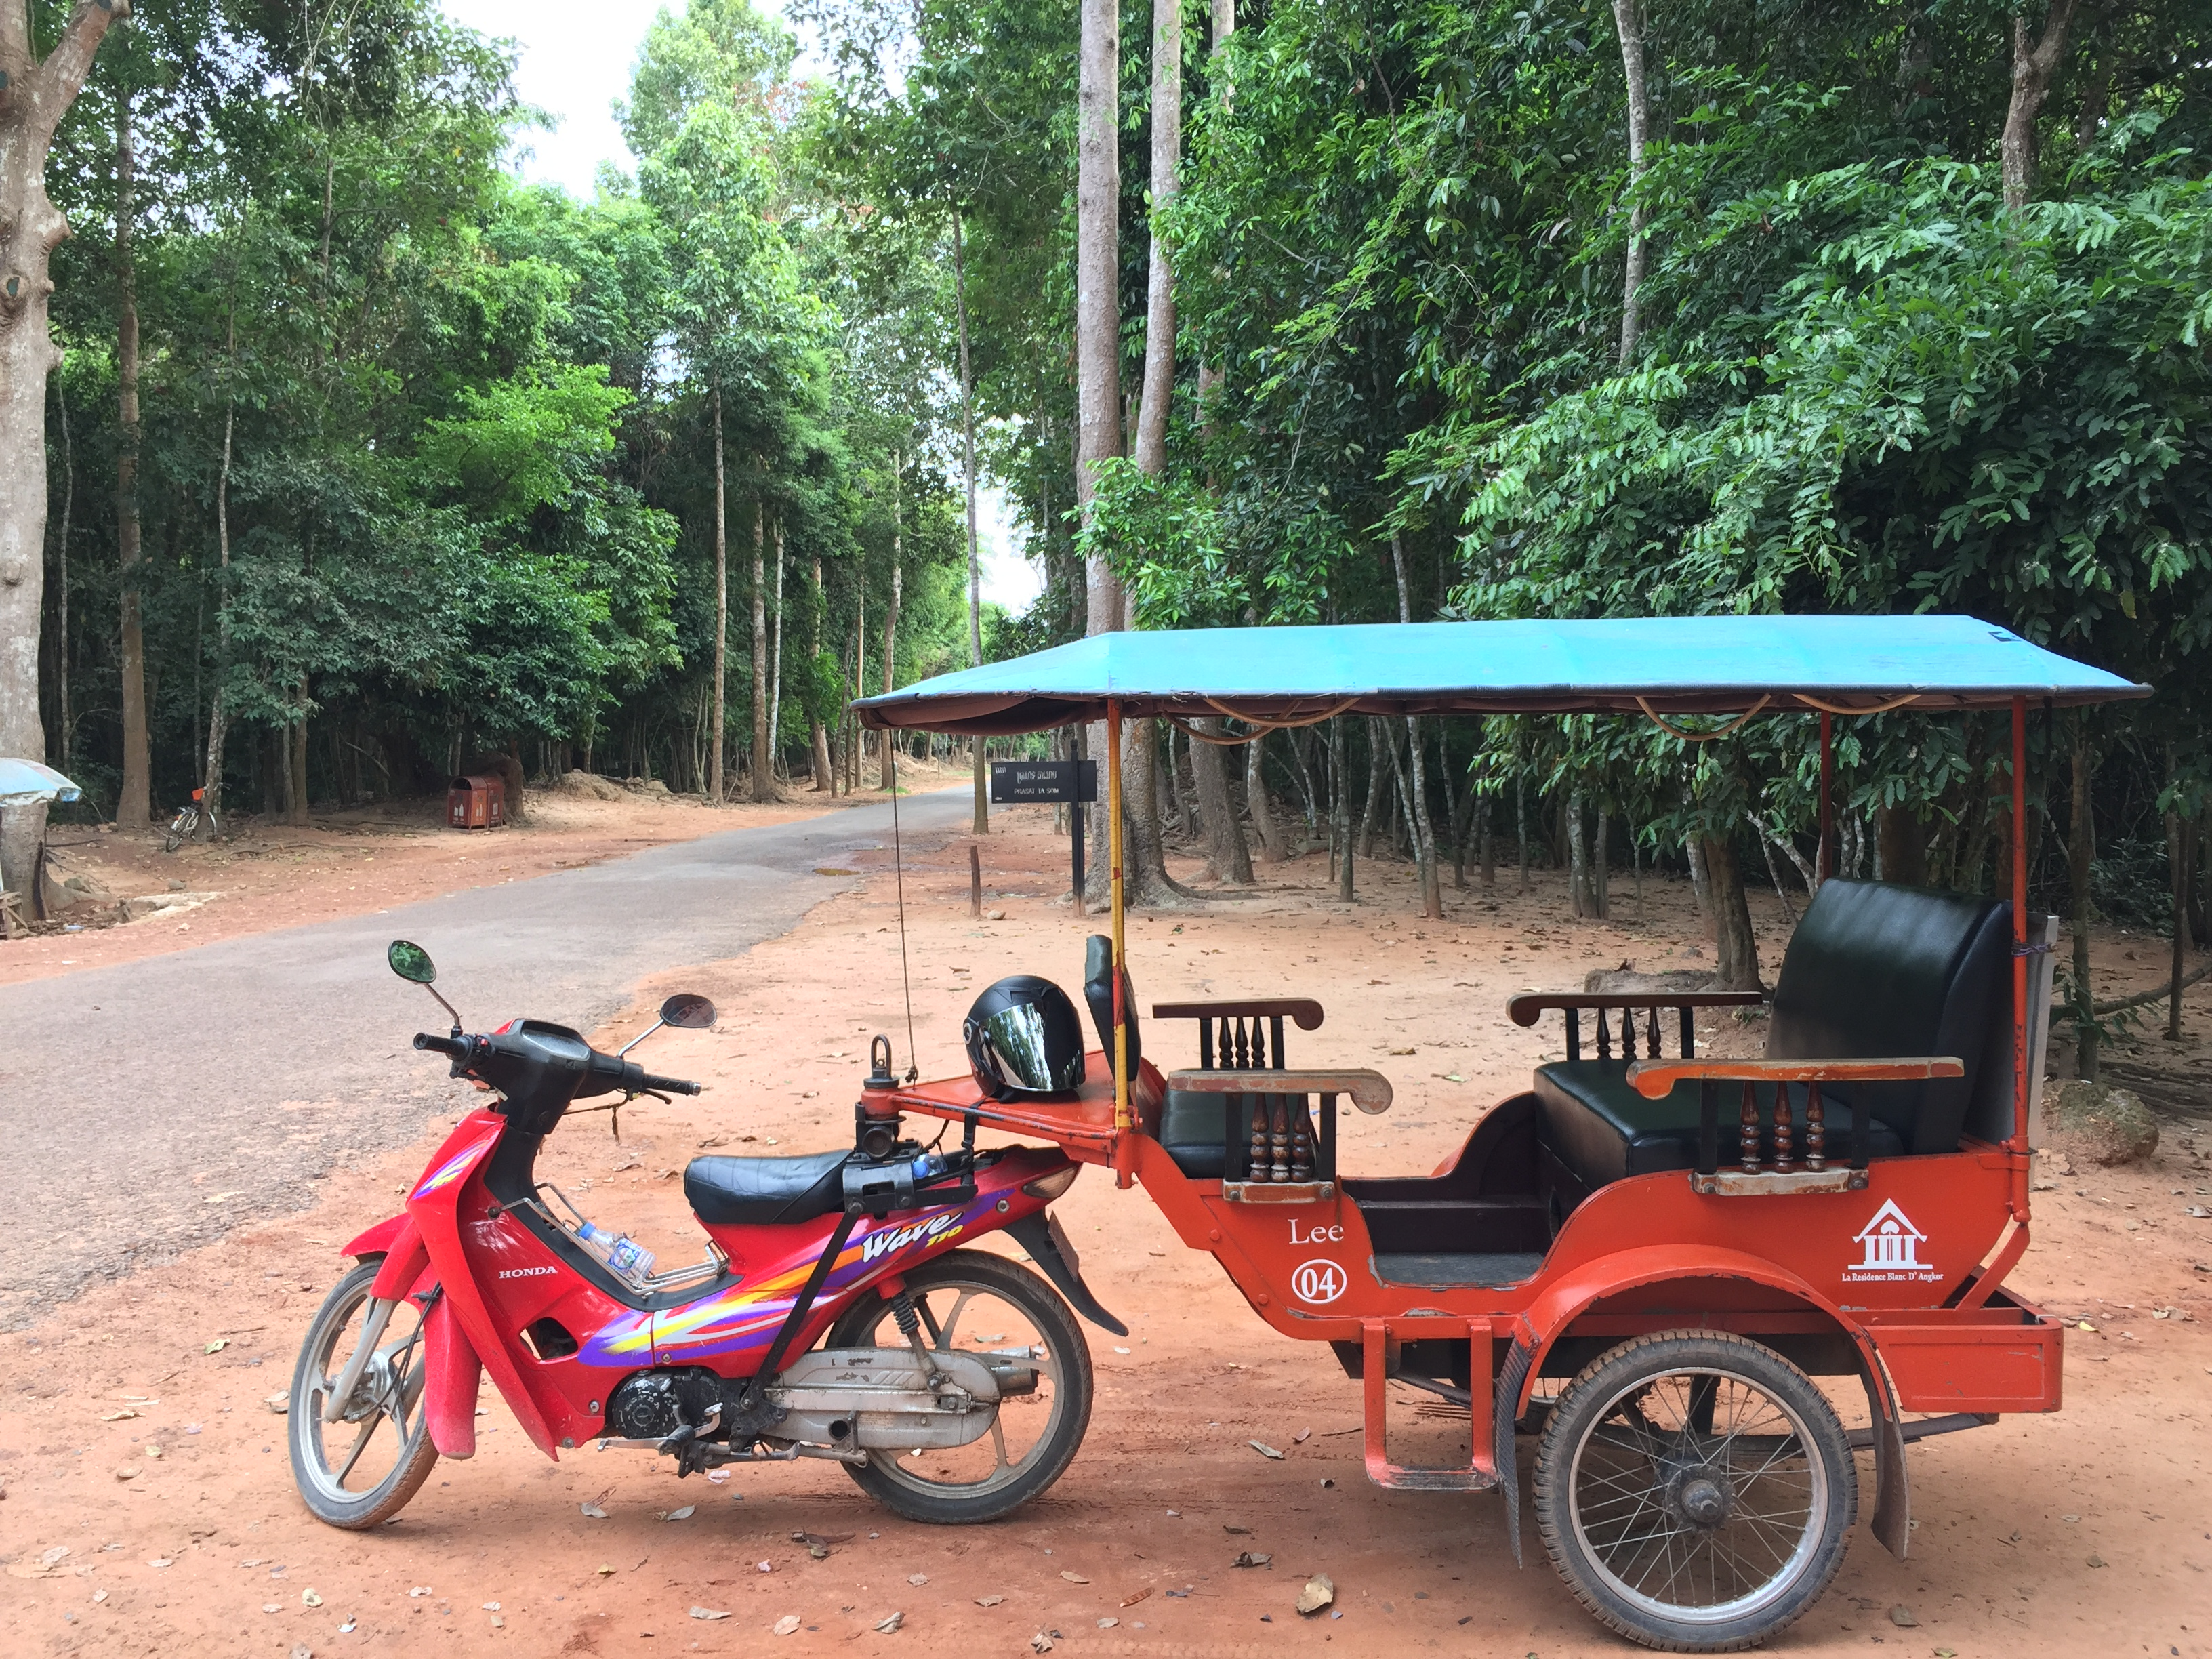 Why you need best Tuk-Tuk driver tour in Siem Reap? best lowest price, best service Guarantee. Best driver with good Speaking English, I have been a tuk tuk driver for many years in Angkor Archaeological Park and other tourism sites around Angkor. I know the most interesting and beautiful places in the greater Siem Reap area. I will help you find the best spots for taking memorable photos. I always offer our best service on your trip of a lifetime. I work honestly and punctually at all times. My services have been prepared with the needs of all travelers in mind. Please try My service - I guarantee that you will see the real Cambodia. I would like to hear from you with any suggestions or recommendations. I am available to attend to your sightseeing and activity requirements. Please feel free contact us here for more informations!